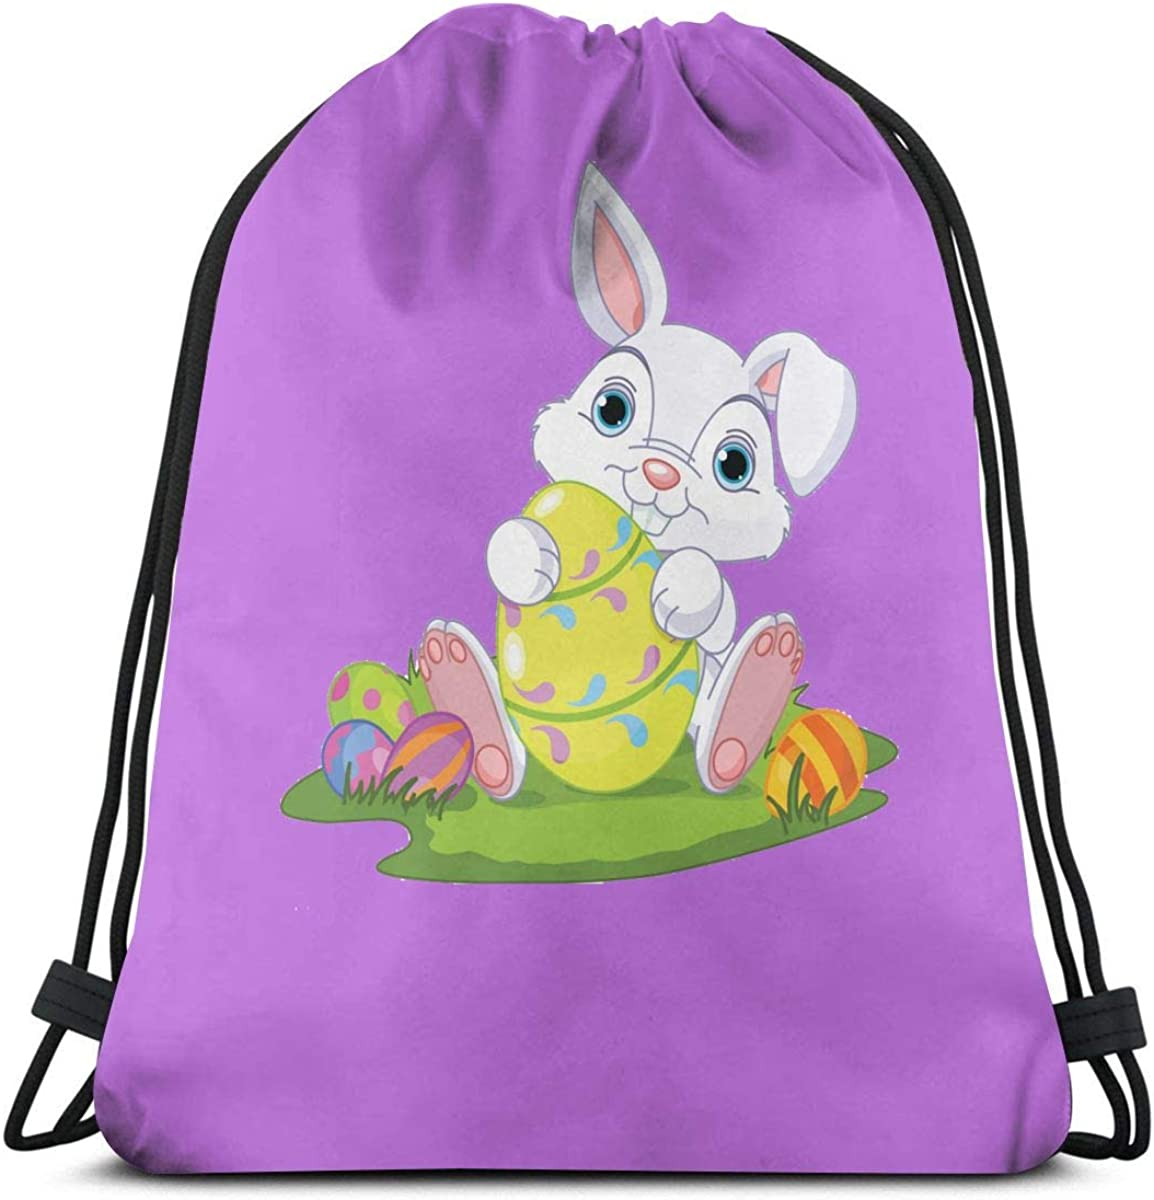 Easter Cute Rabbit Personalized Mens And Womens Sports Fitness Bag Drawstring Backpack Fashion Dance Bag Hiking Bag Light Weight